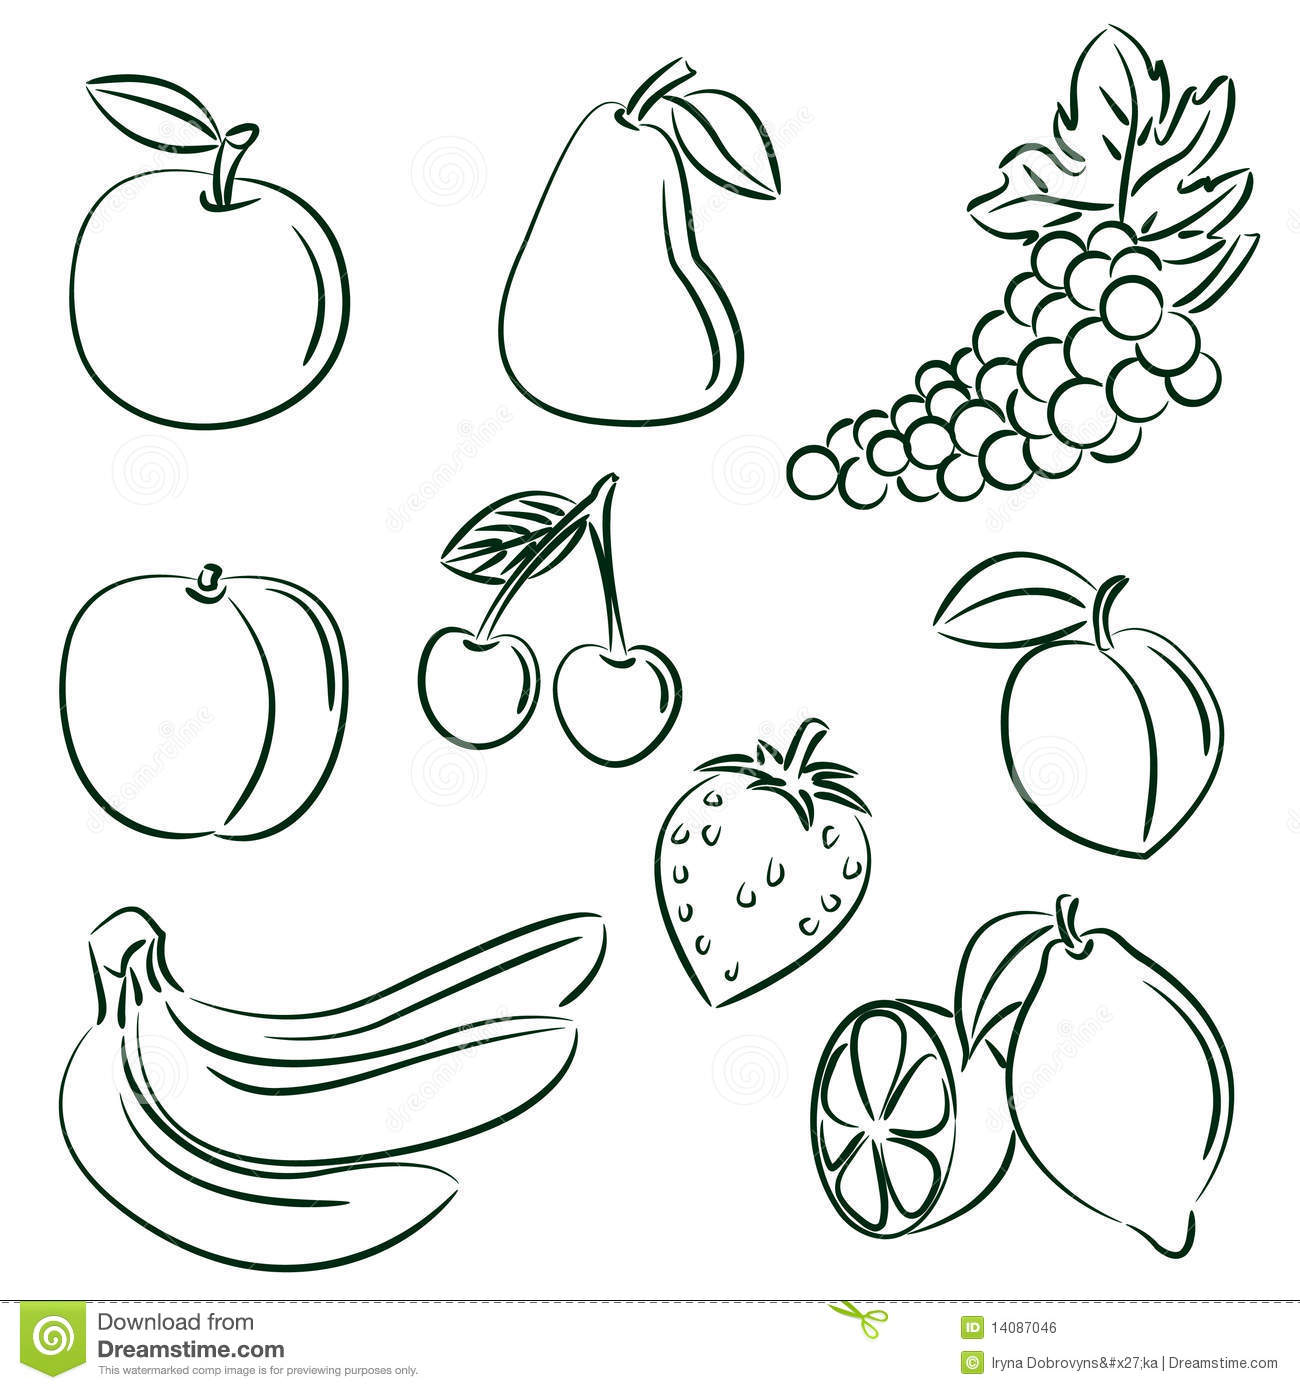 Fruits collection